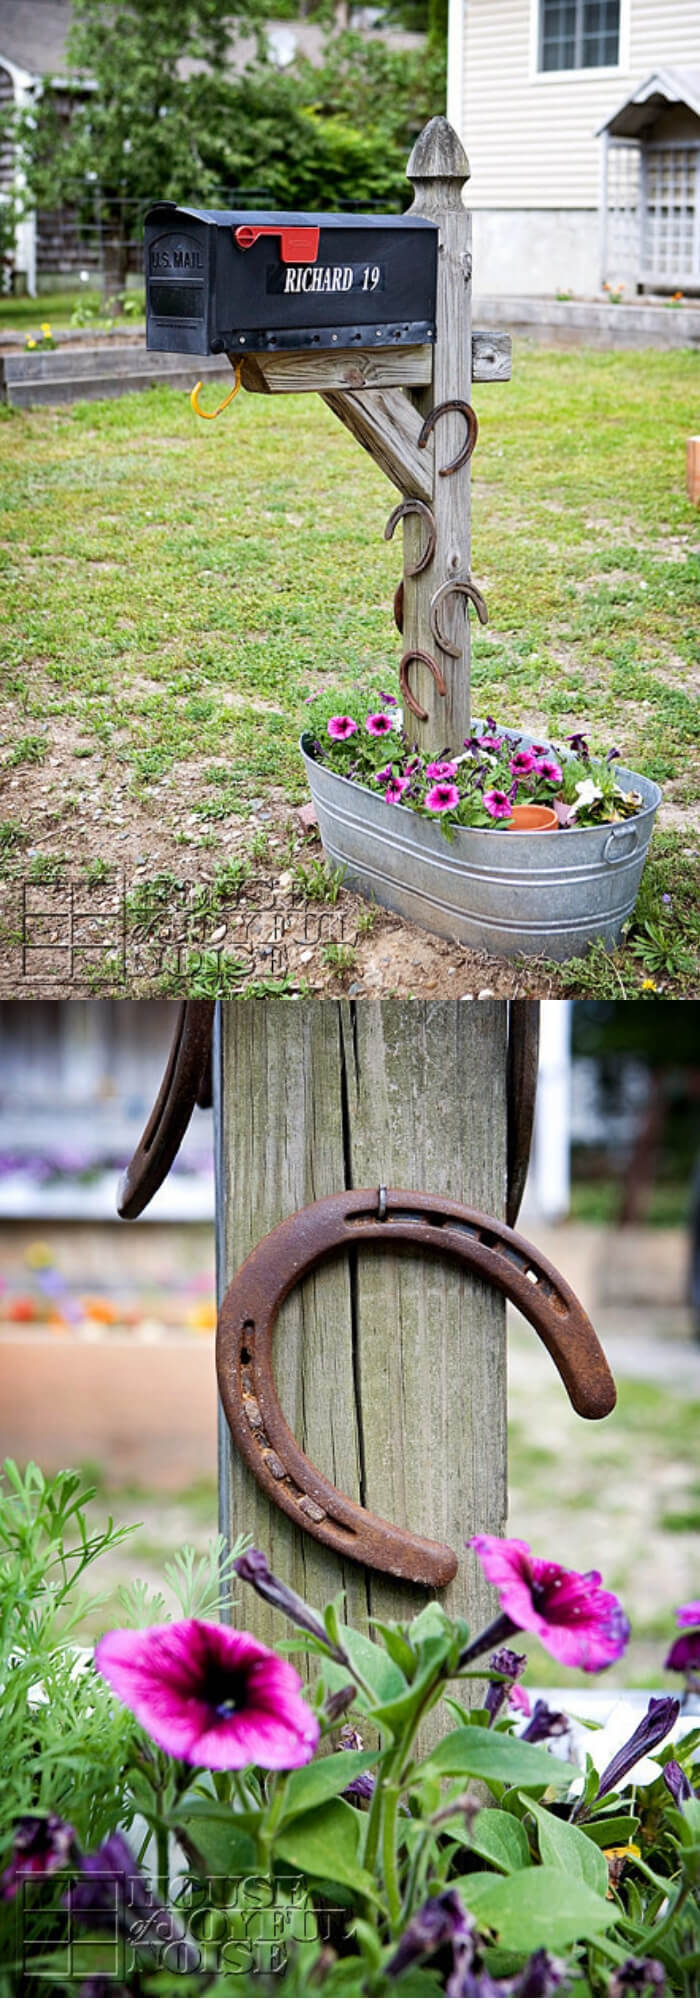 Mailbox from horse shoes | Best Mailbox Landscaping Ideas